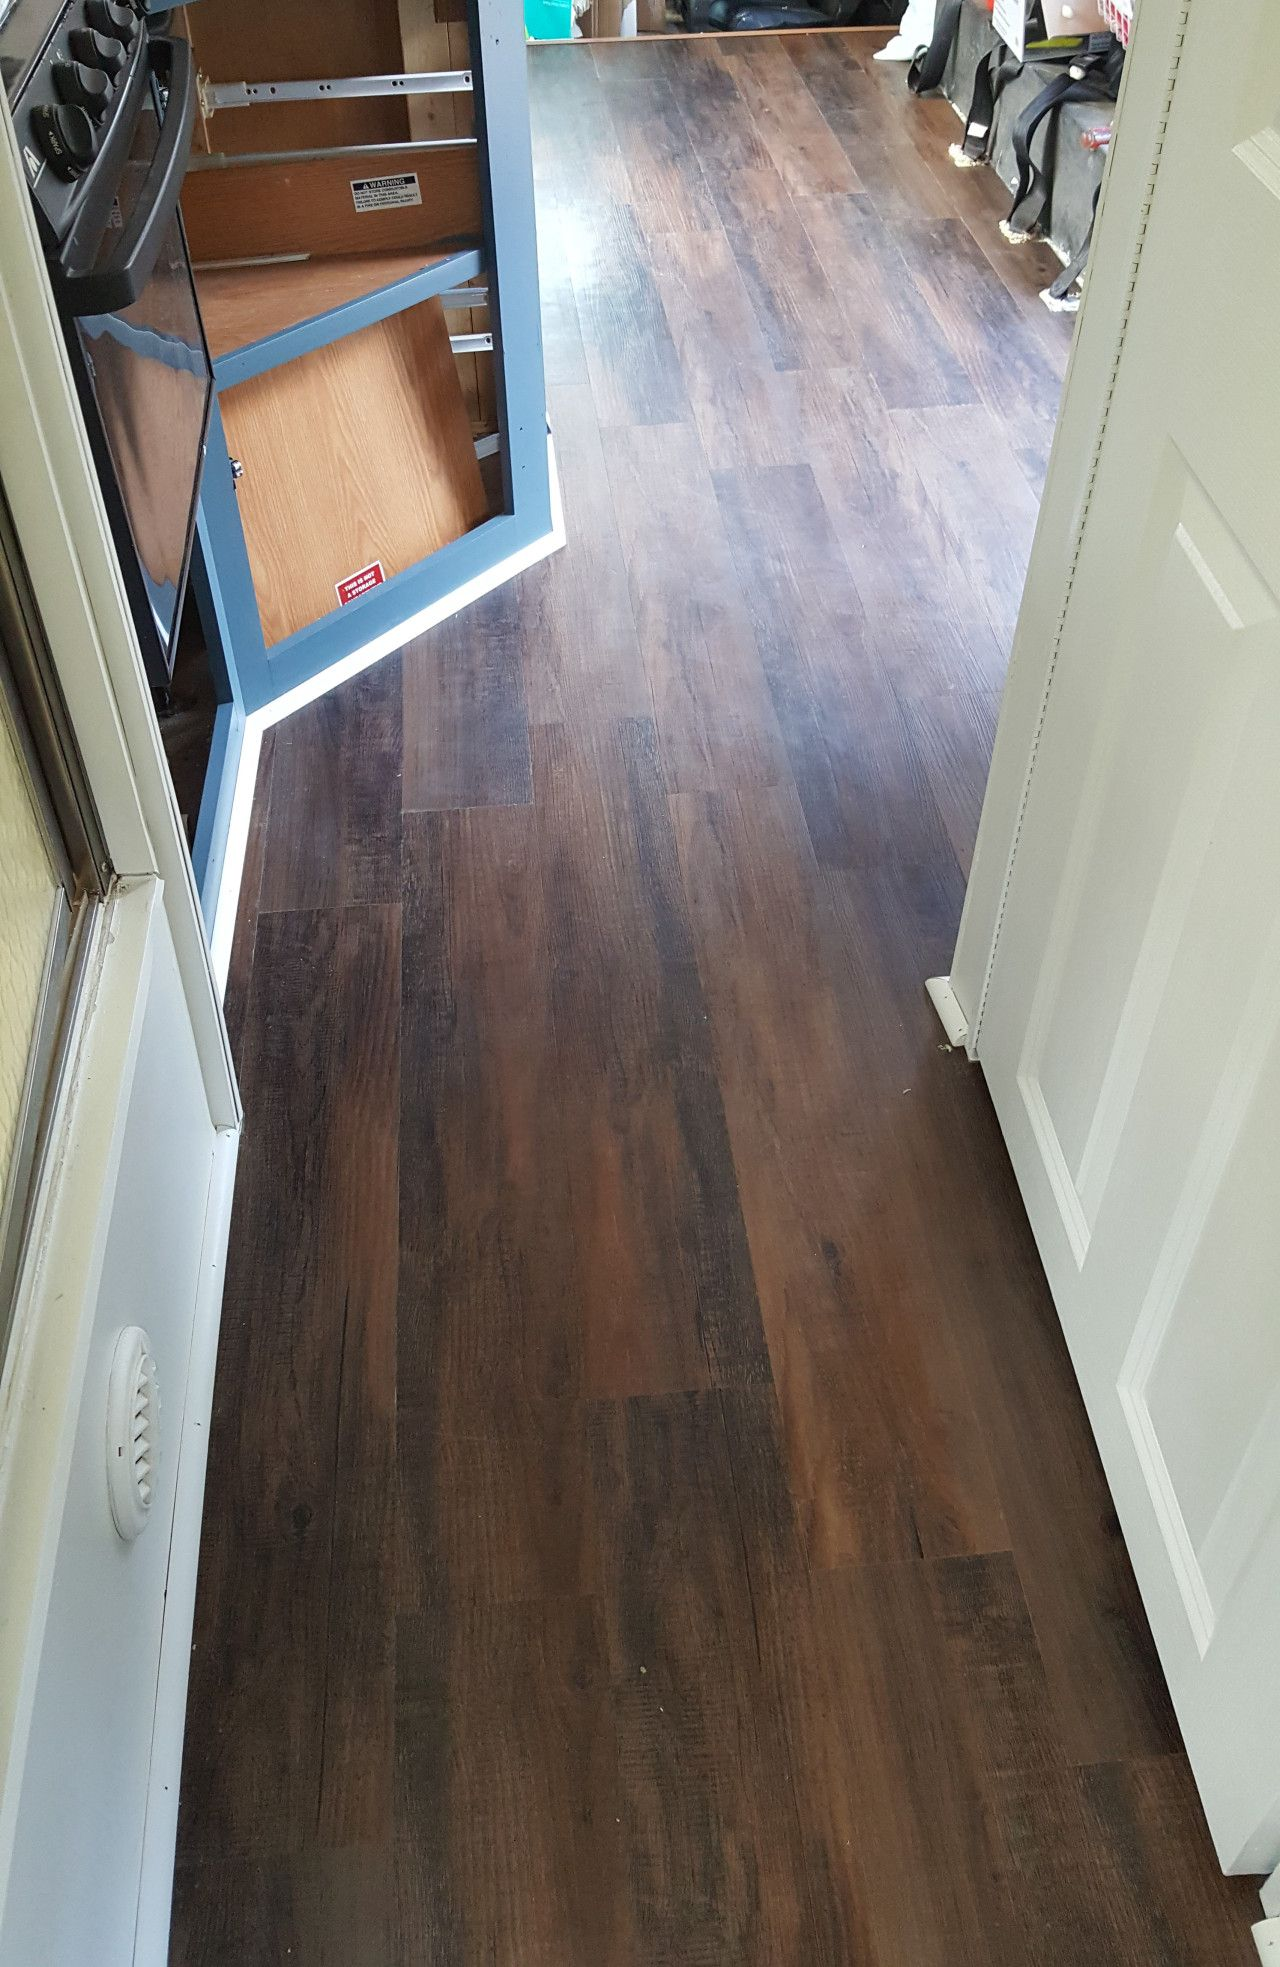 Lowes Peel And Stick Vinyl Plank Flooring Installation For Rv Vinyl Plank Flooring Installing Vinyl Plank Flooring Vinyl Flooring